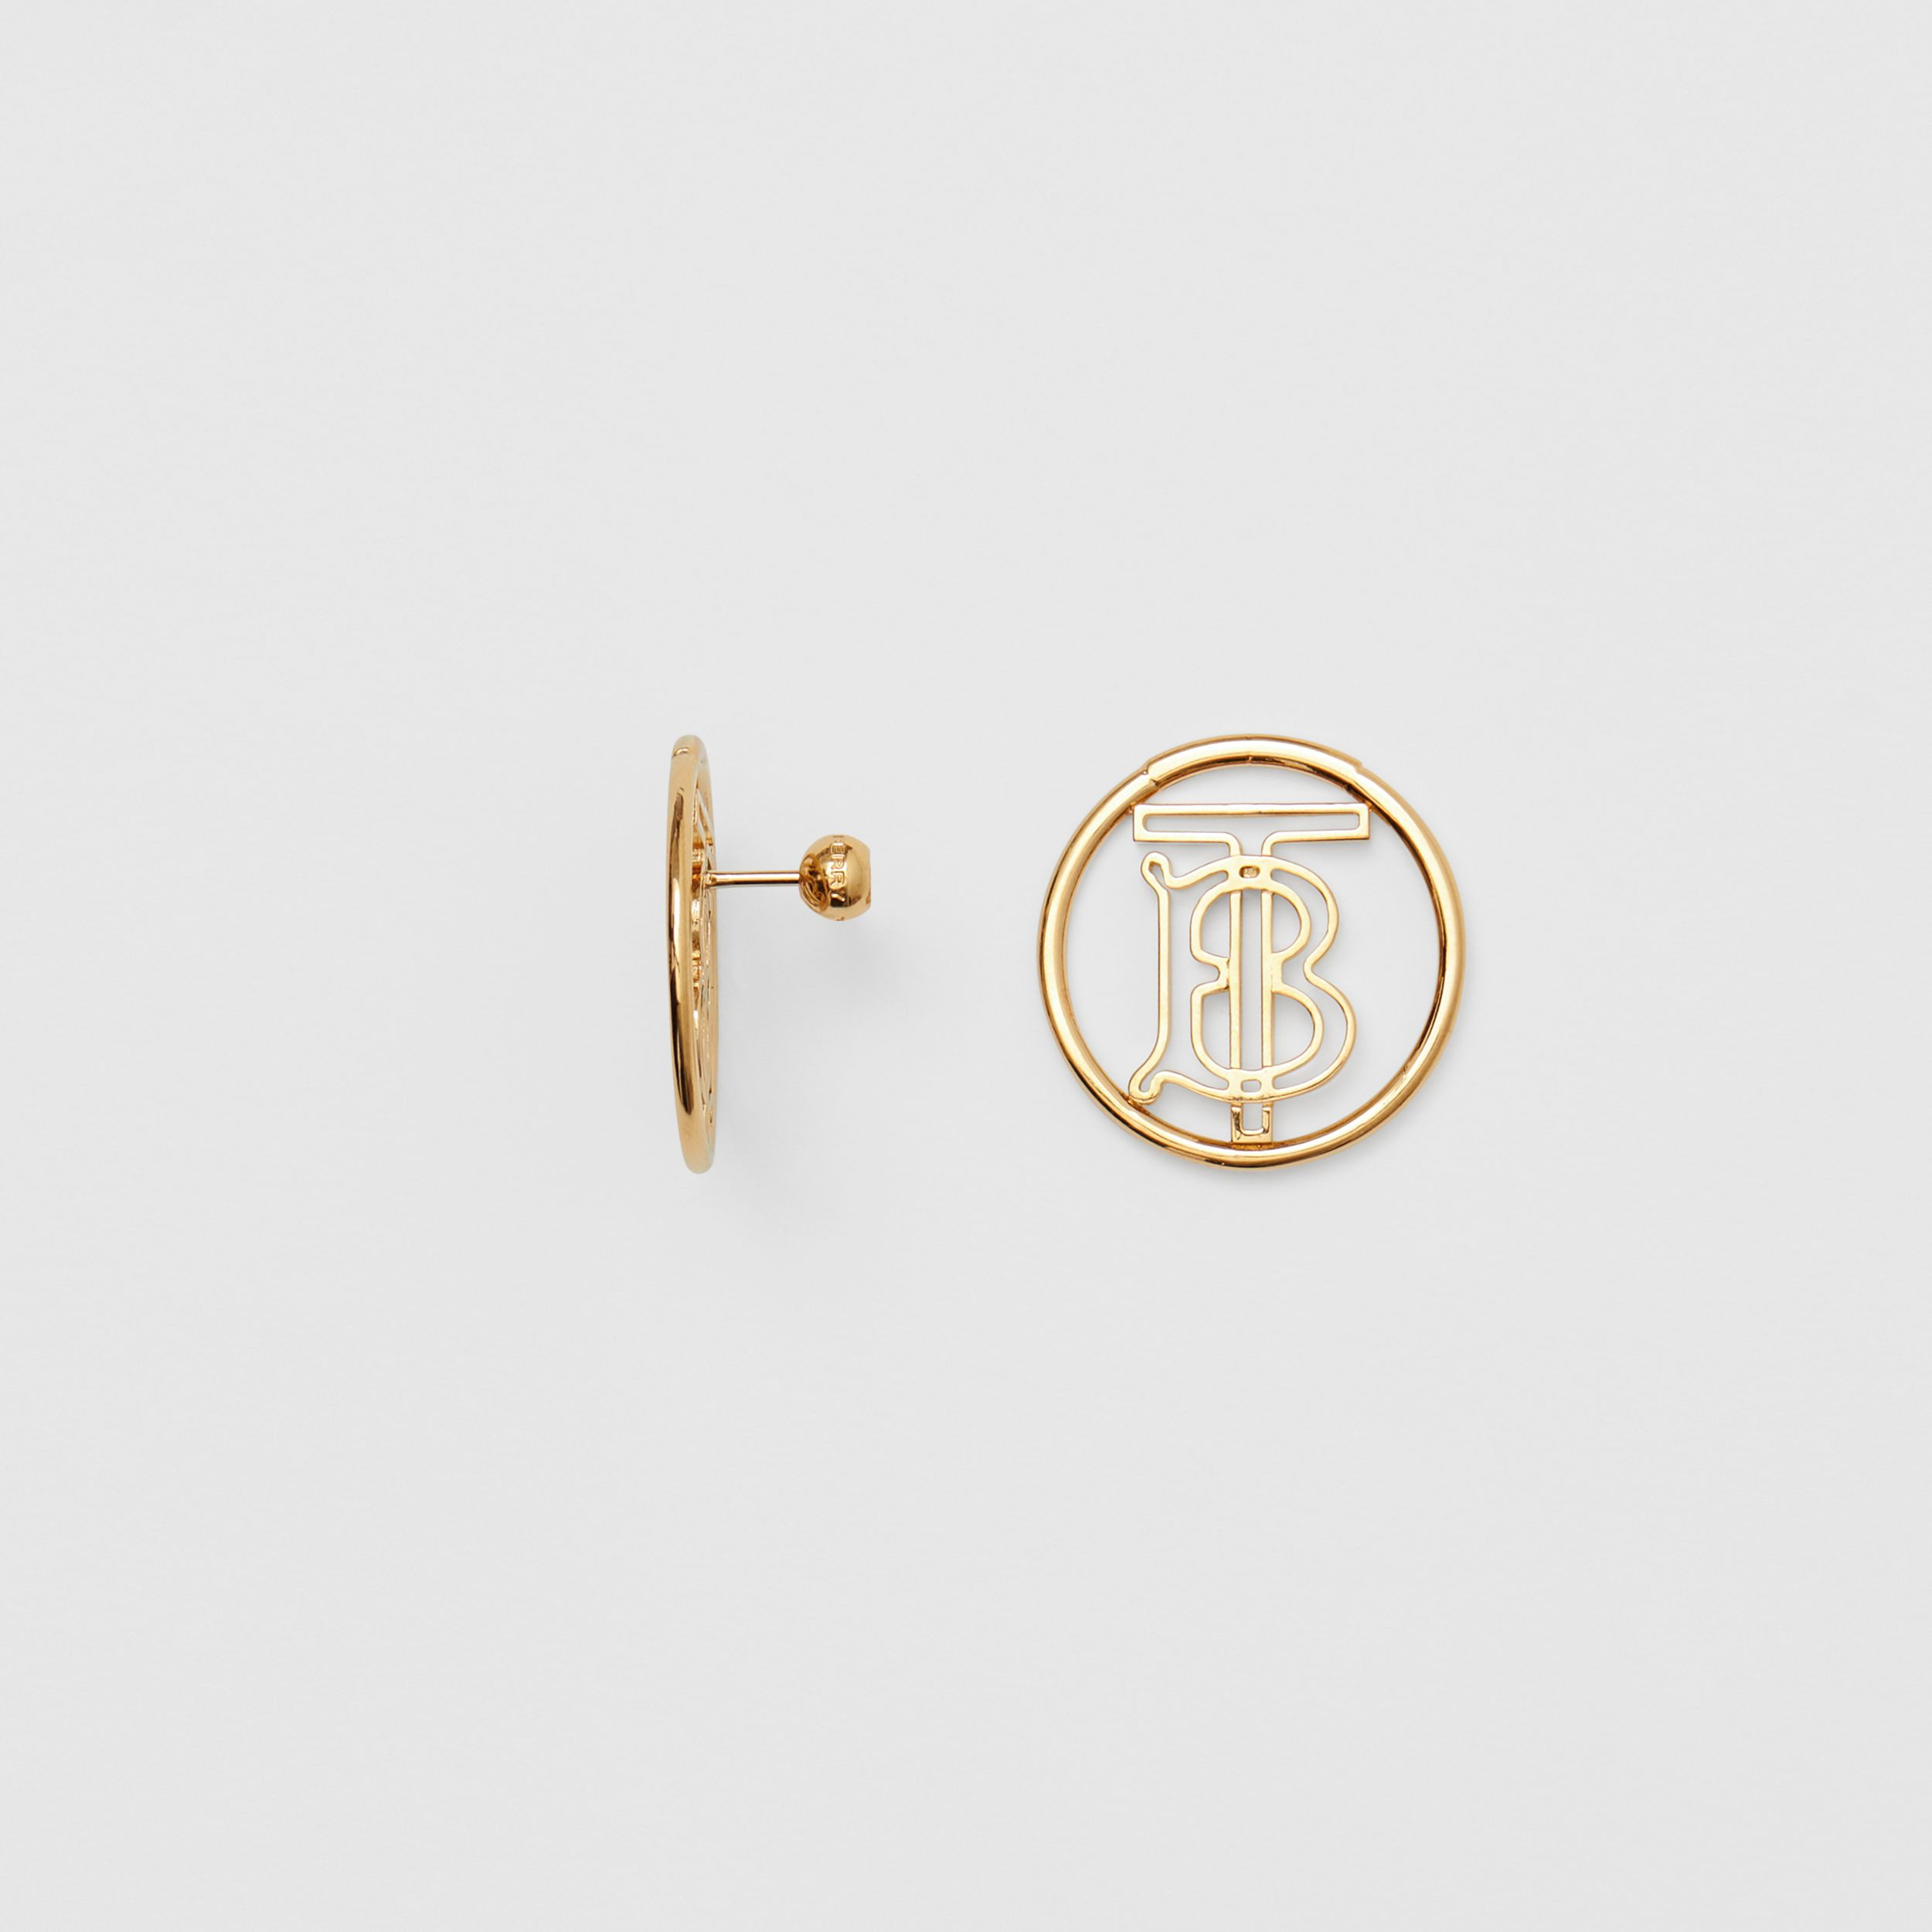 Gold-plated Monogram Motif Earrings in Light - Women | Burberry Australia - 4